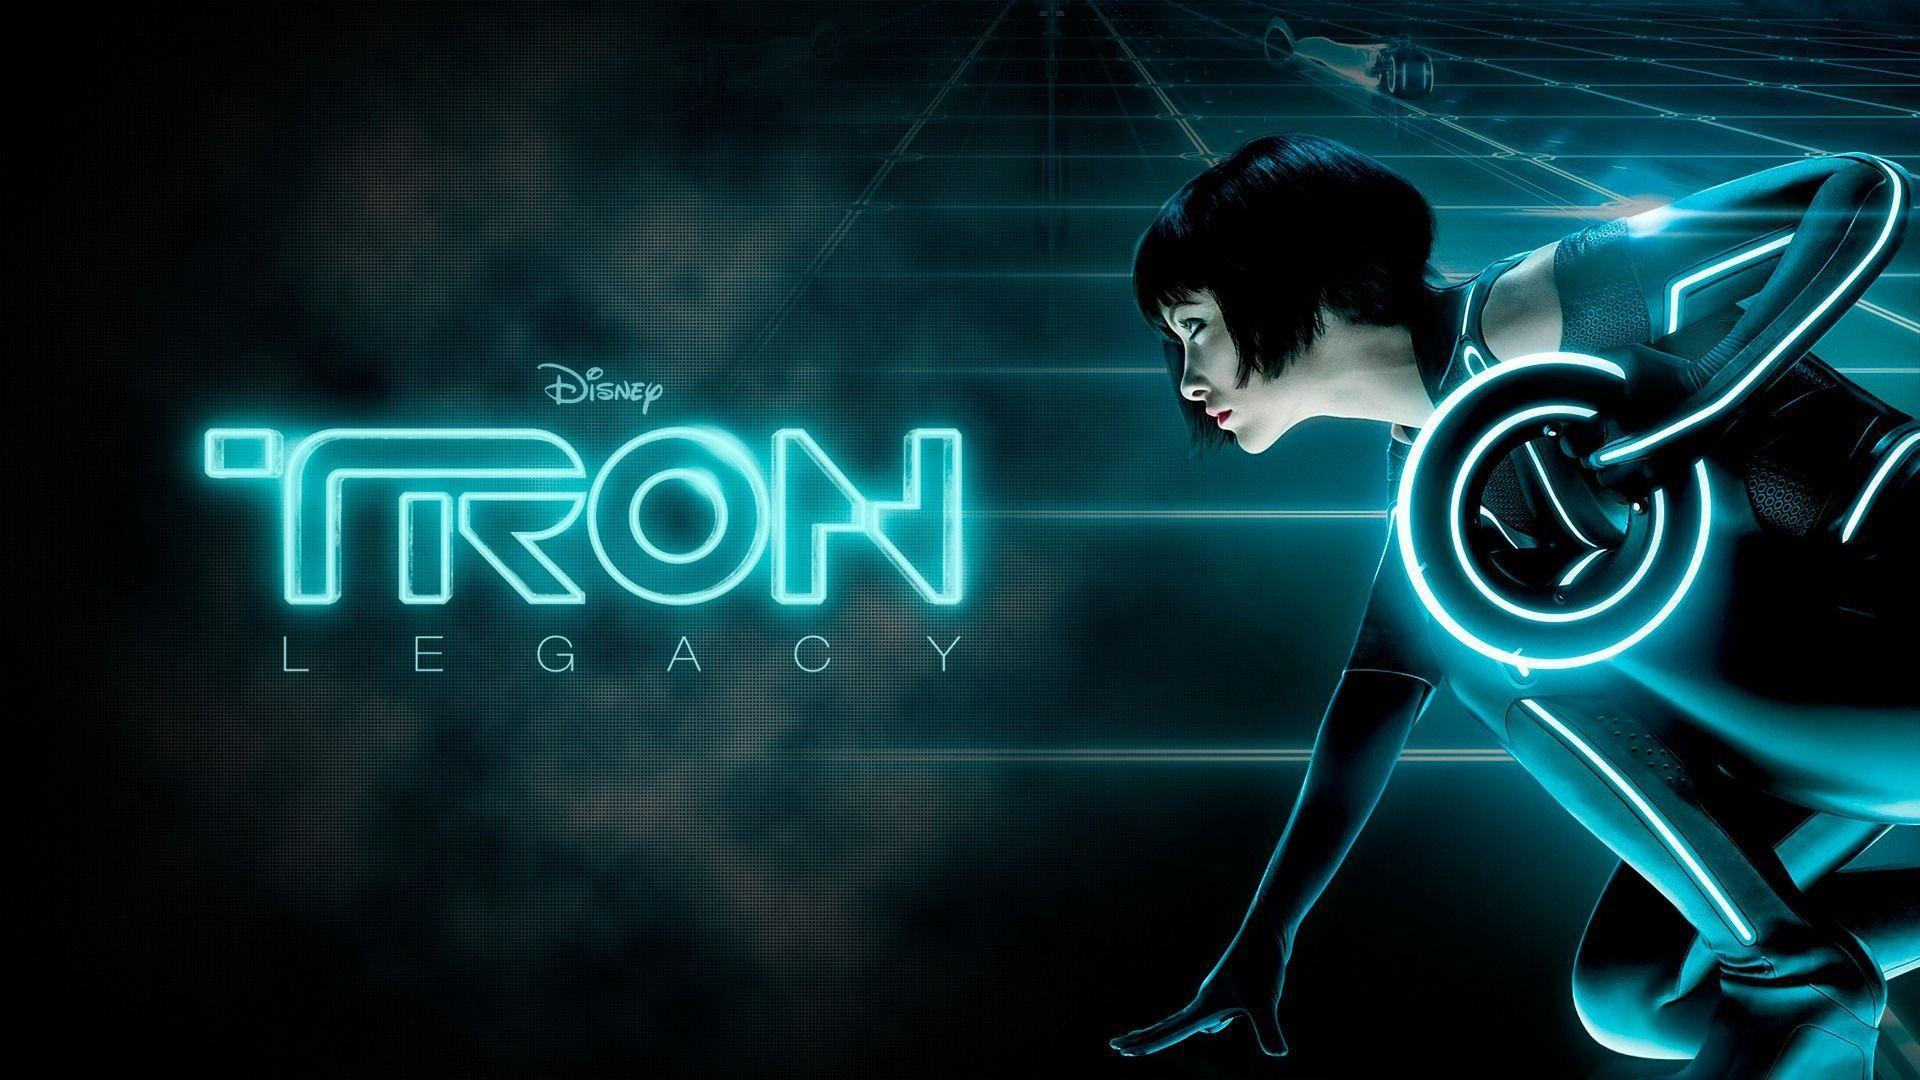 tron wallpaper hd style - photo #6